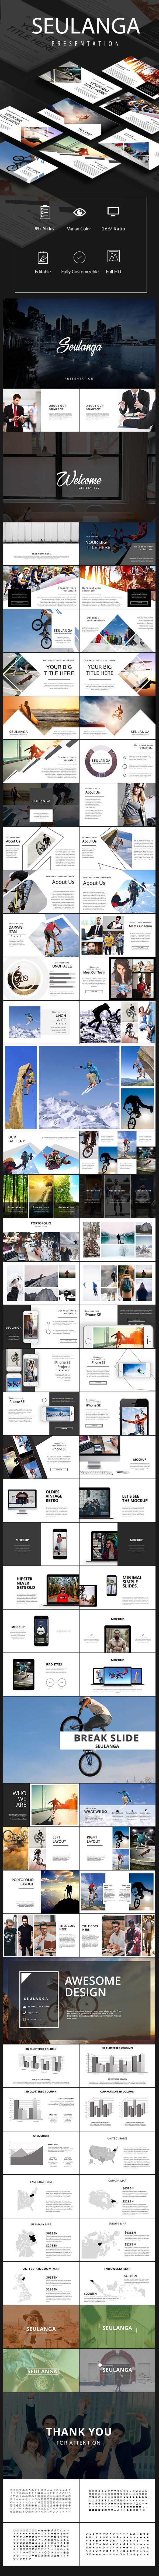 727 best powerpoint template images on pinterest power point seulanga presentation templates powerpoint templates toneelgroepblik Gallery